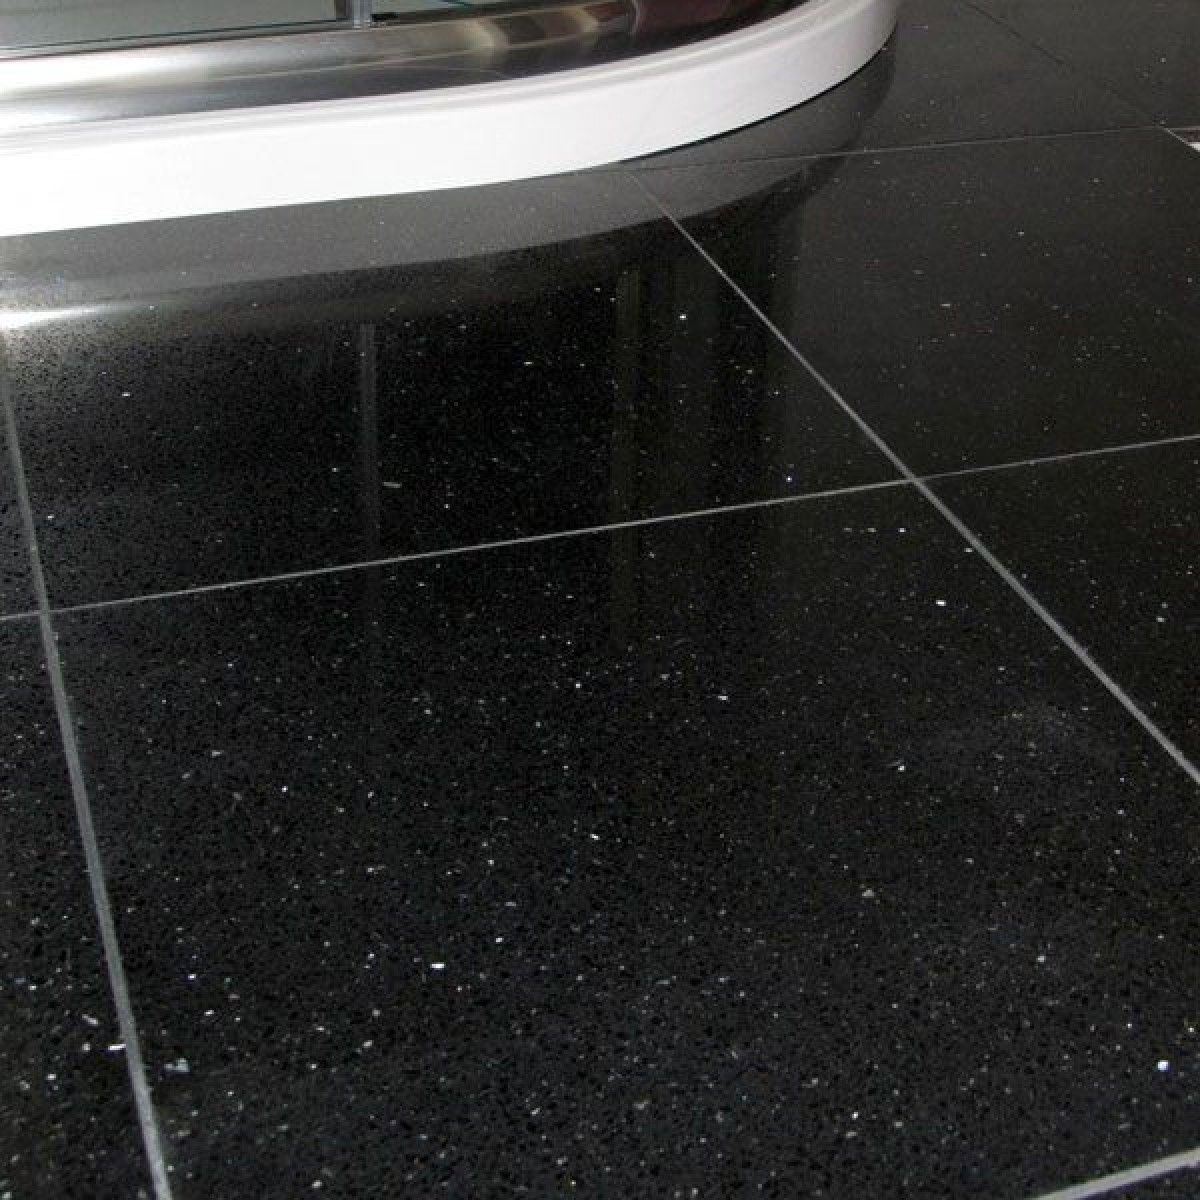 Quartz star stone black 300mm x 300mm quartzstone flooring quartz star stone black wall and floor tiles dailygadgetfo Images